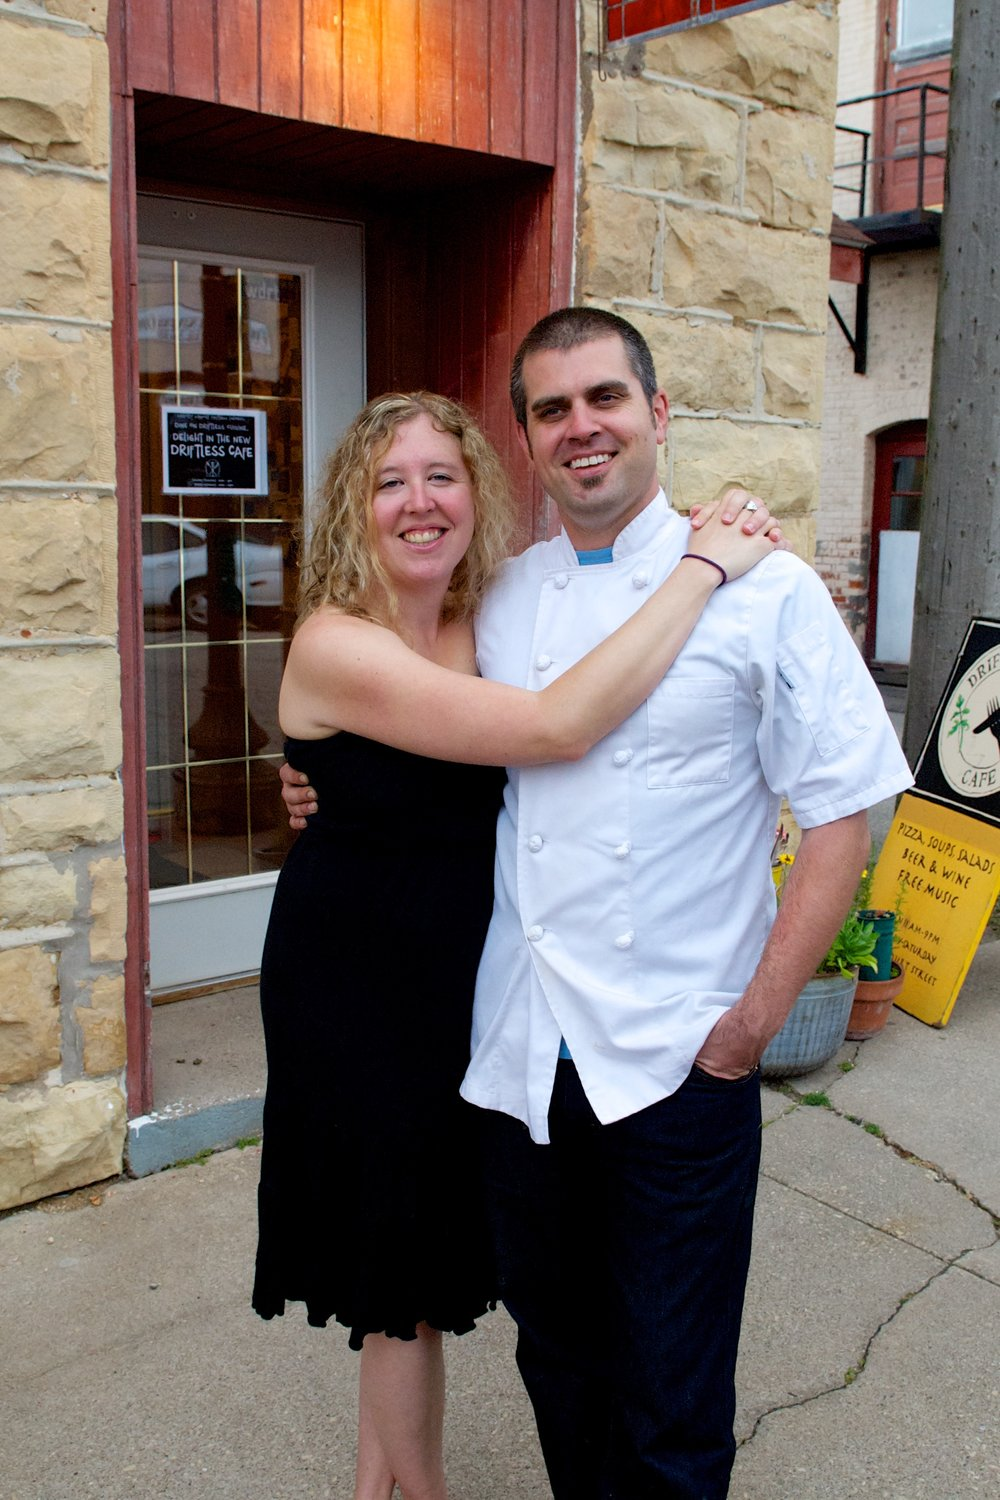 Luke and Ruthie Zahm, own Driftless Cafe in Viroqua.    Photo by Drew Shonka.